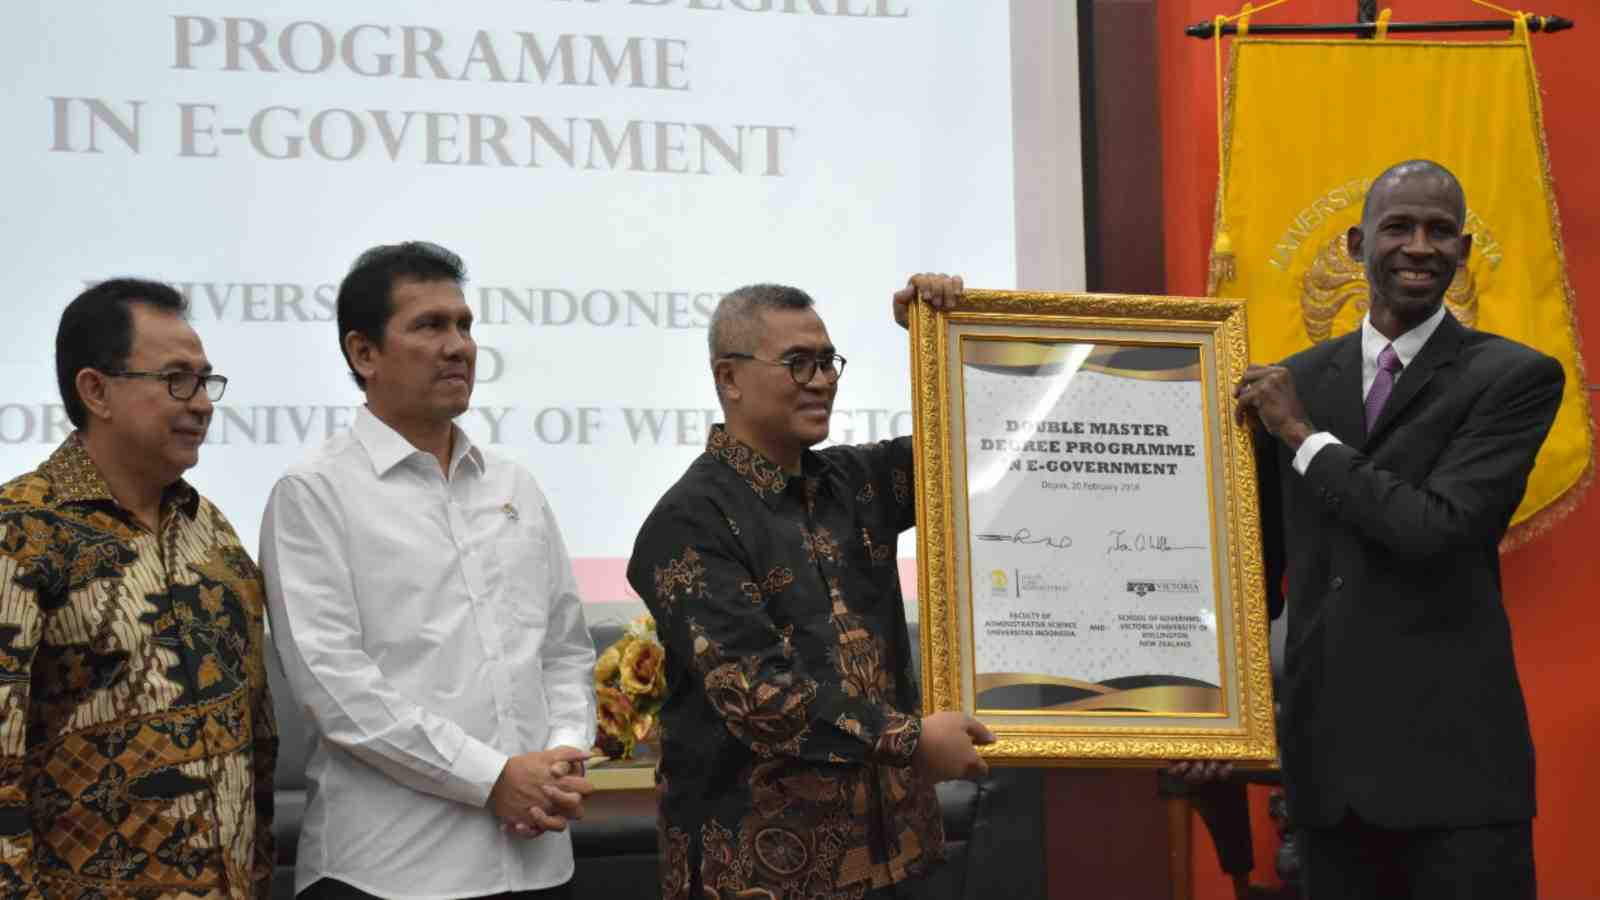 Dignitaries at double Master's degree for Indonesian civil servants